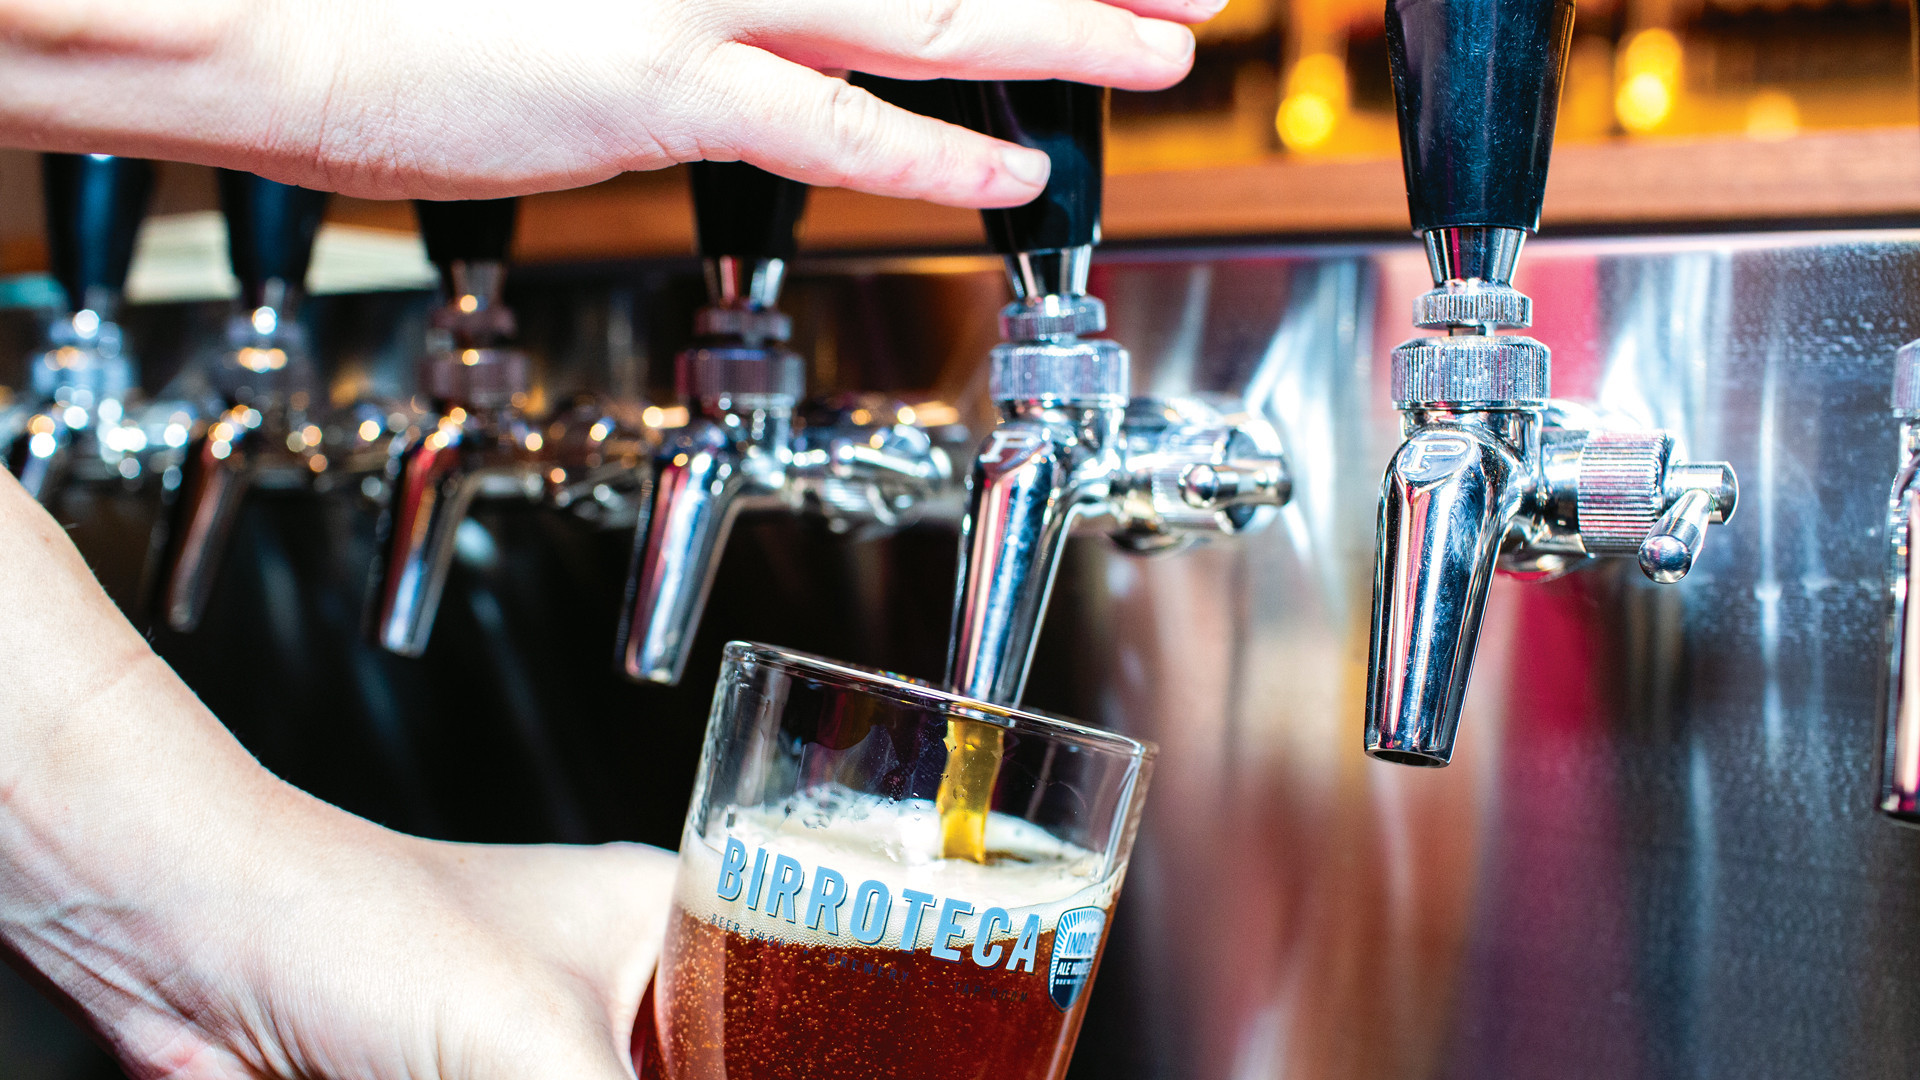 Alcohol delivery in Toronto | Taps at Birroteca brewery and bottleshop inside Eataly in Toronto